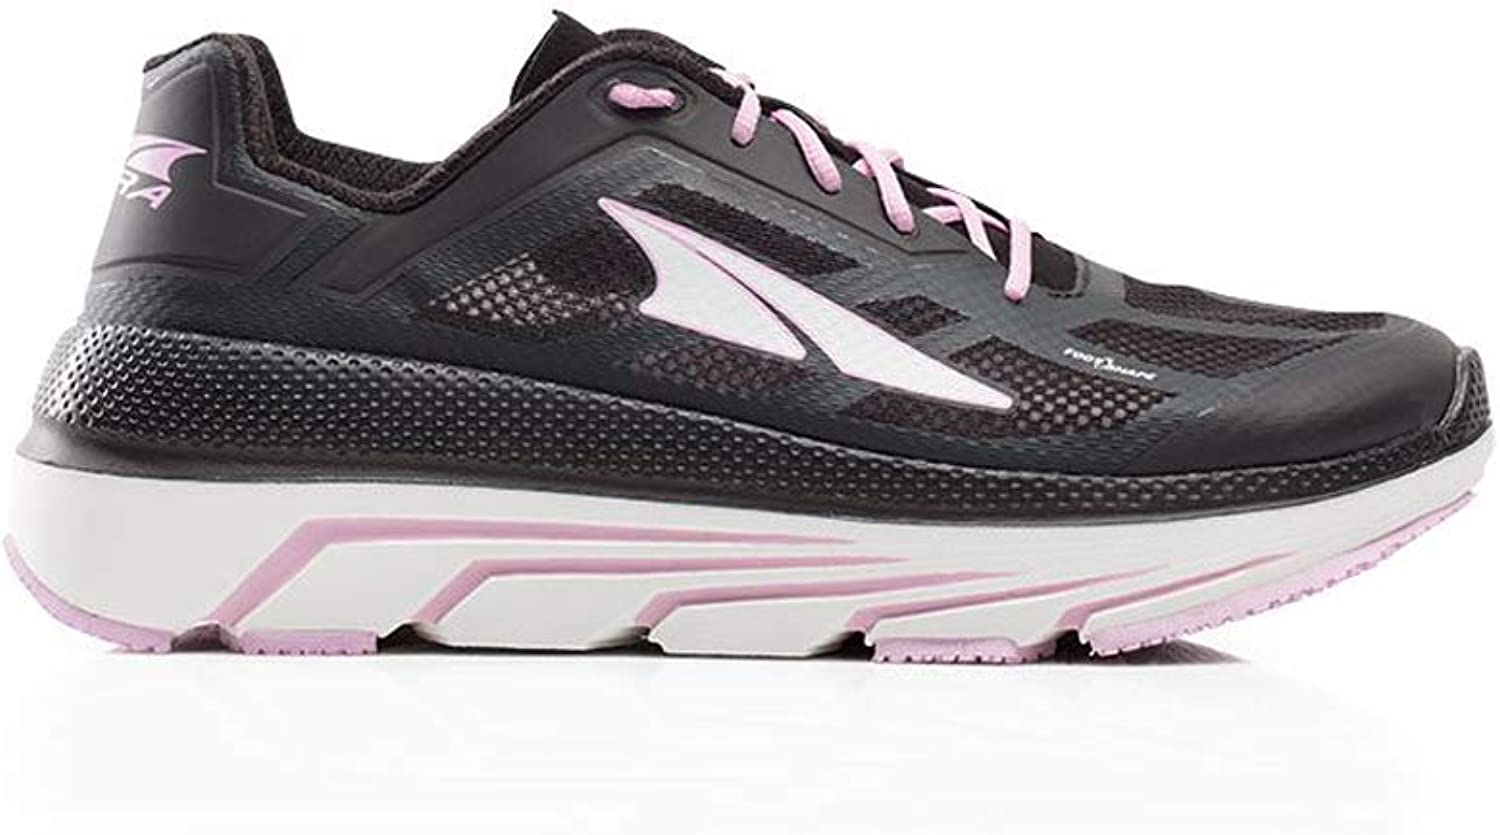 Altra AFW1838F Women's Duo Running shoes, Black Pink - 9 B(M) US